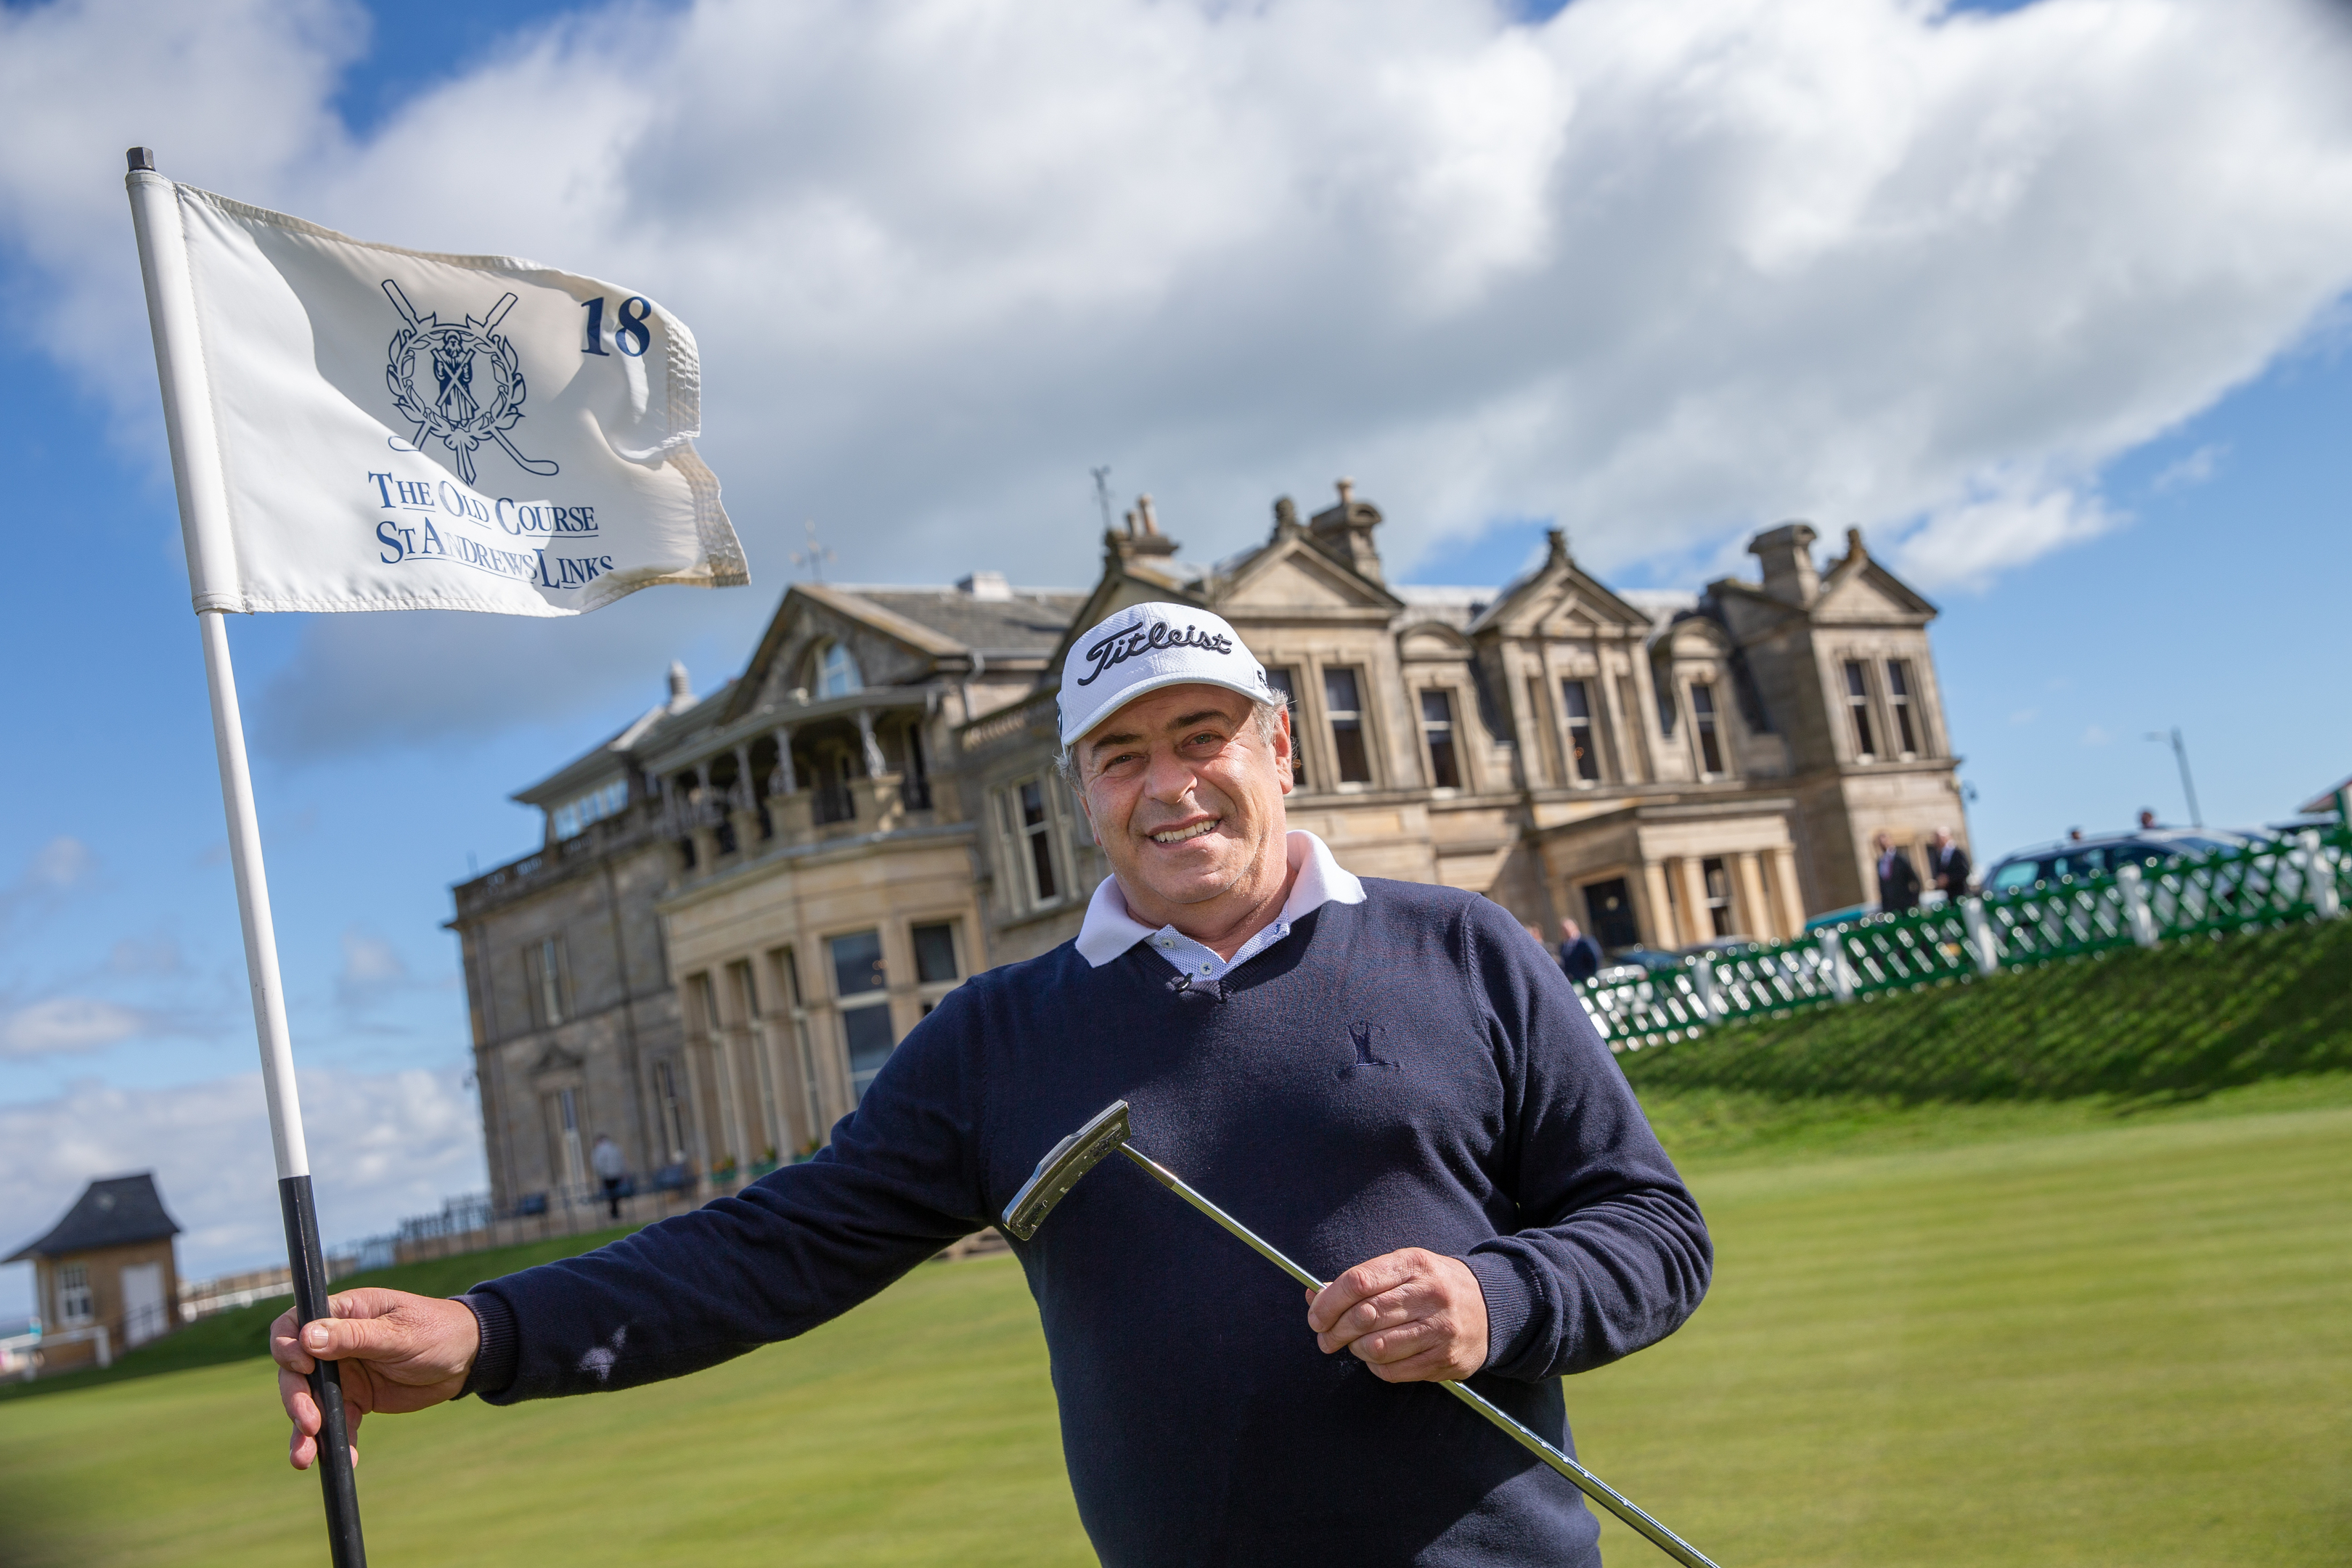 Constantino Rocca who famously putted from the valley of sin at the 18th hole at St Andrews in 1996 to force a playoff with John Daly in the Open Championship, pictured in front of the iconic R&A clubhouse.